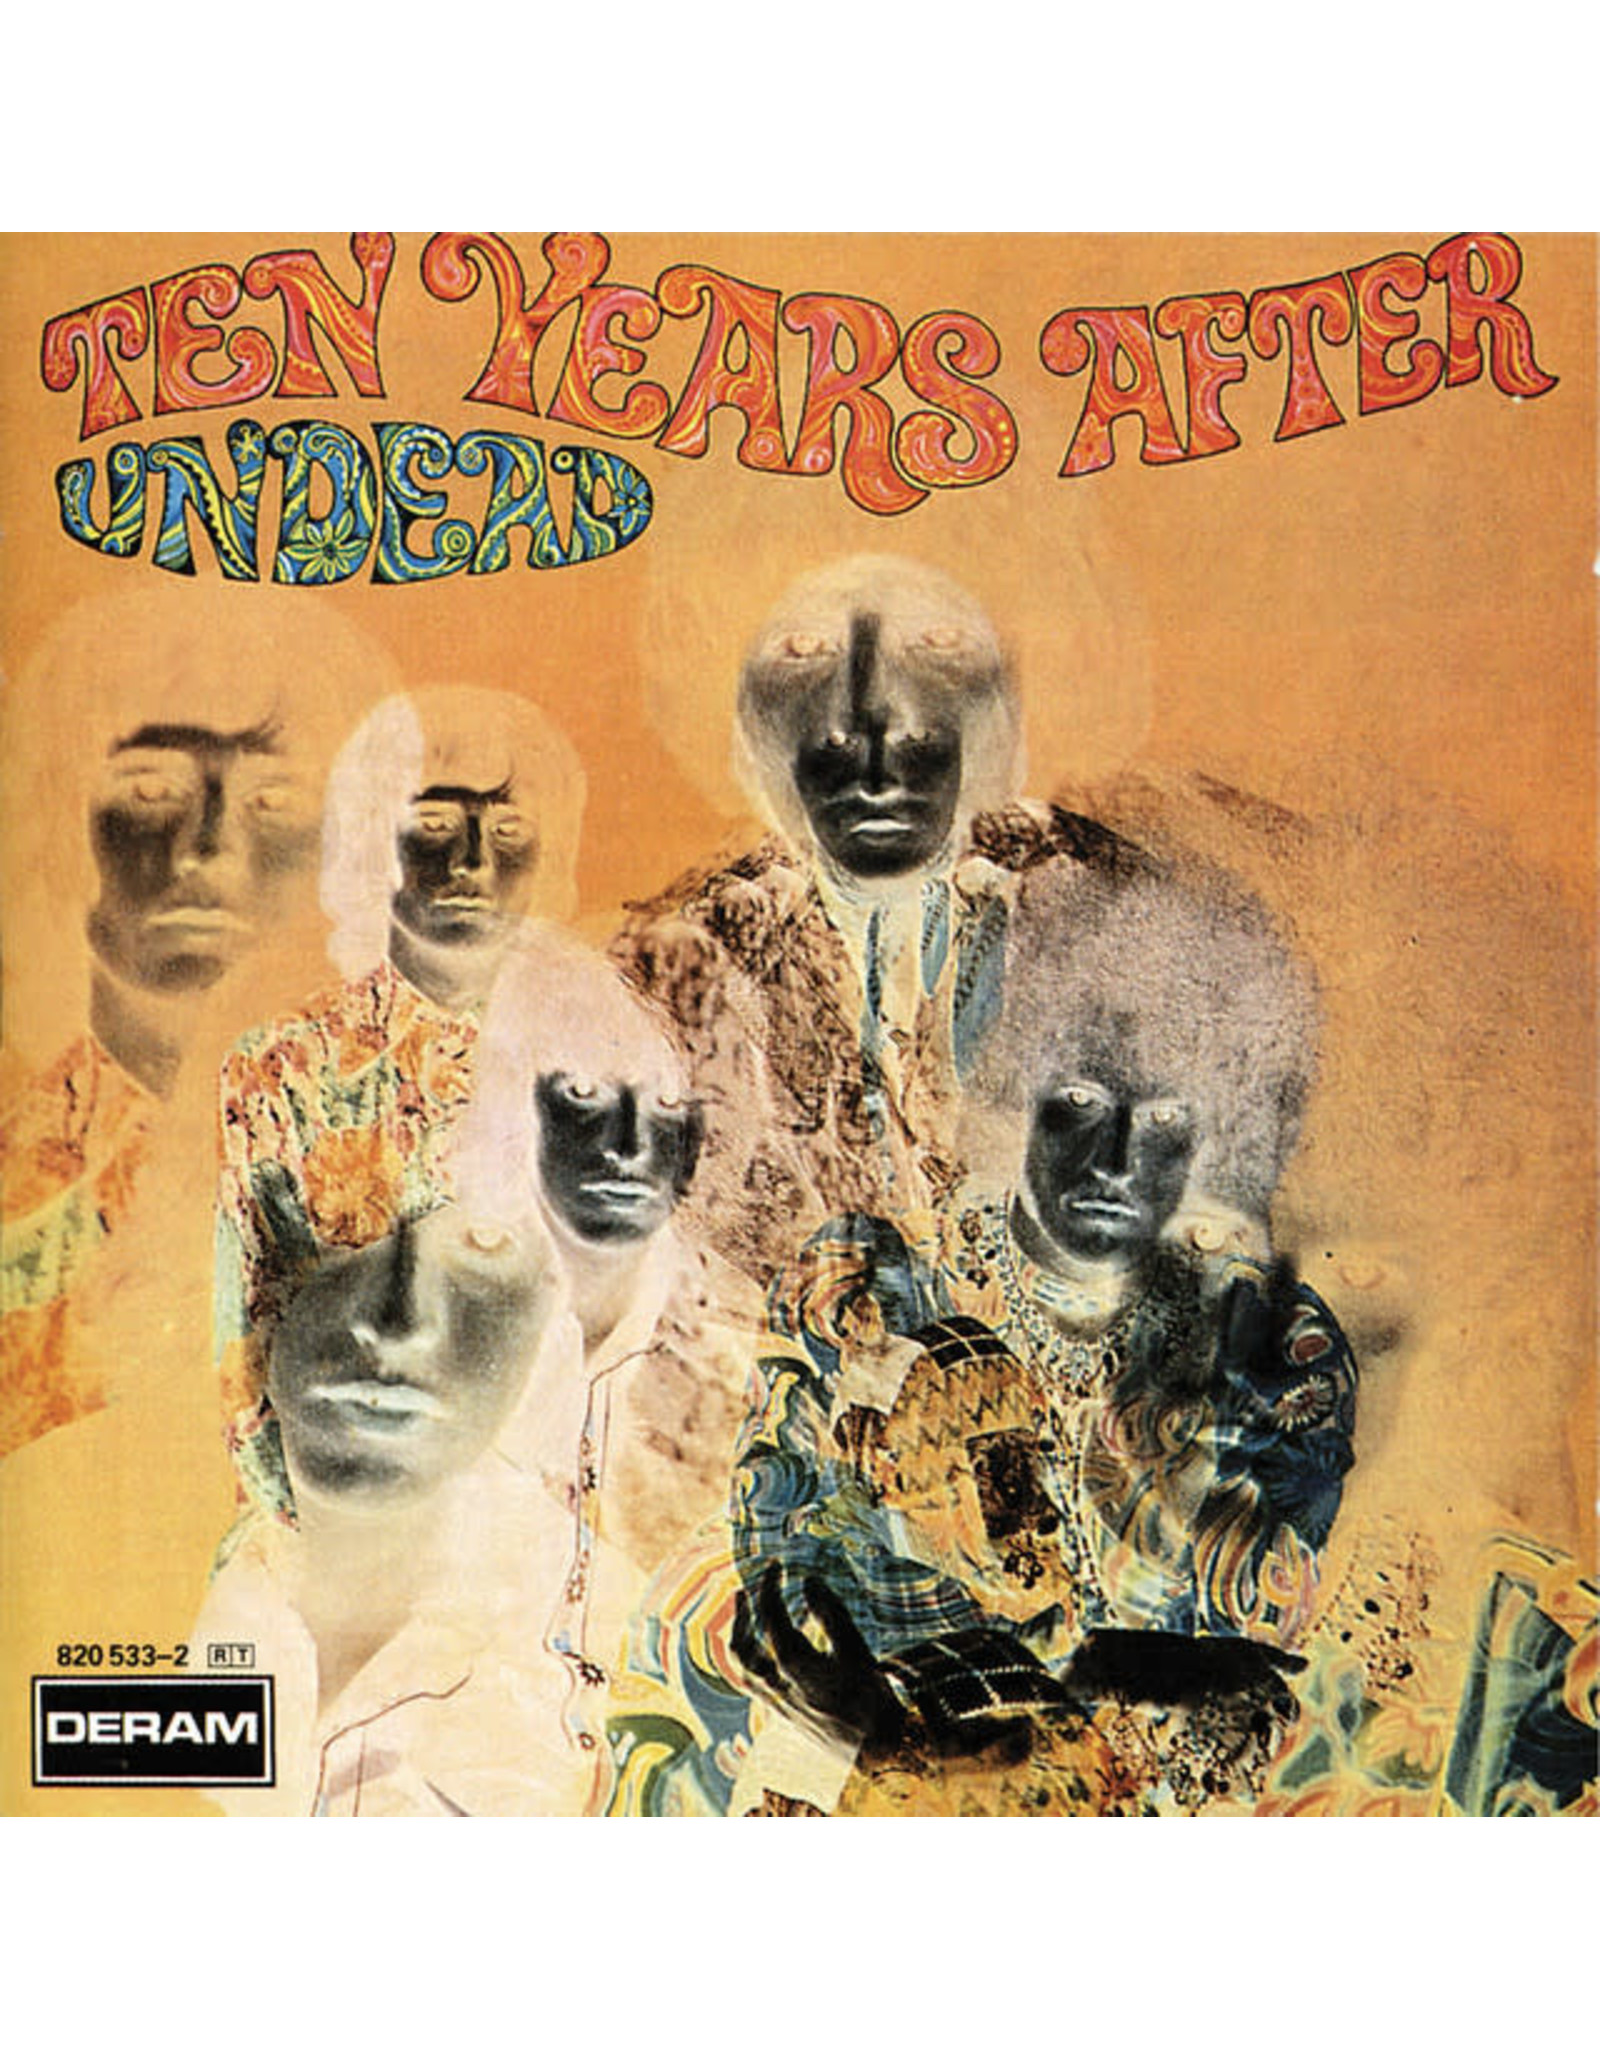 Vinyl Ten Years After - Undead